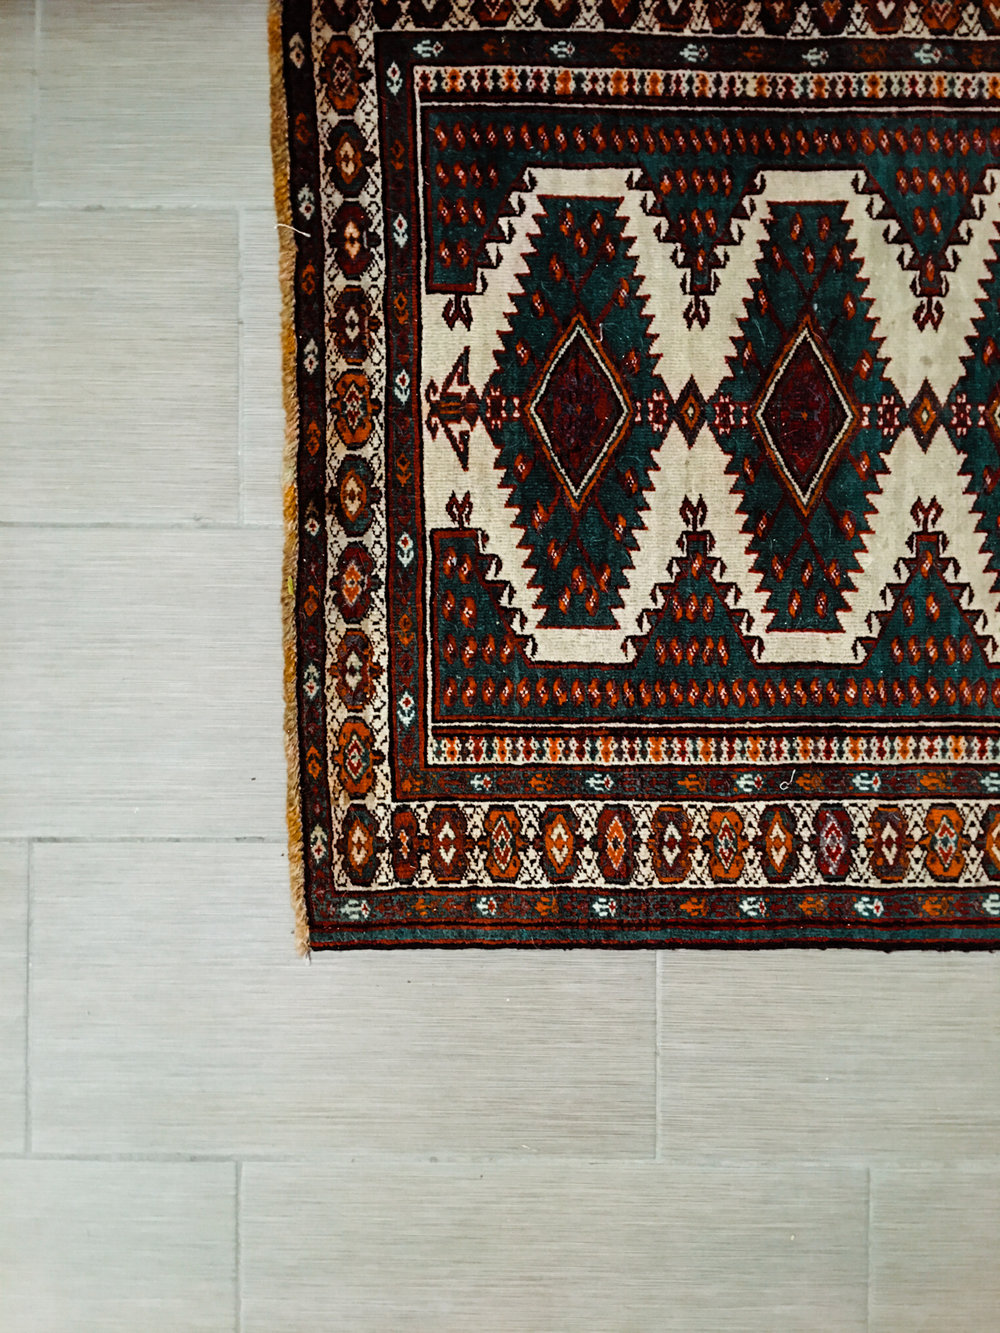 The gorgeous vintage rug was sourced by Gretchen of  KY Rose Designs . Gretchen has such a beautiful, curated collection of vintage rugs.